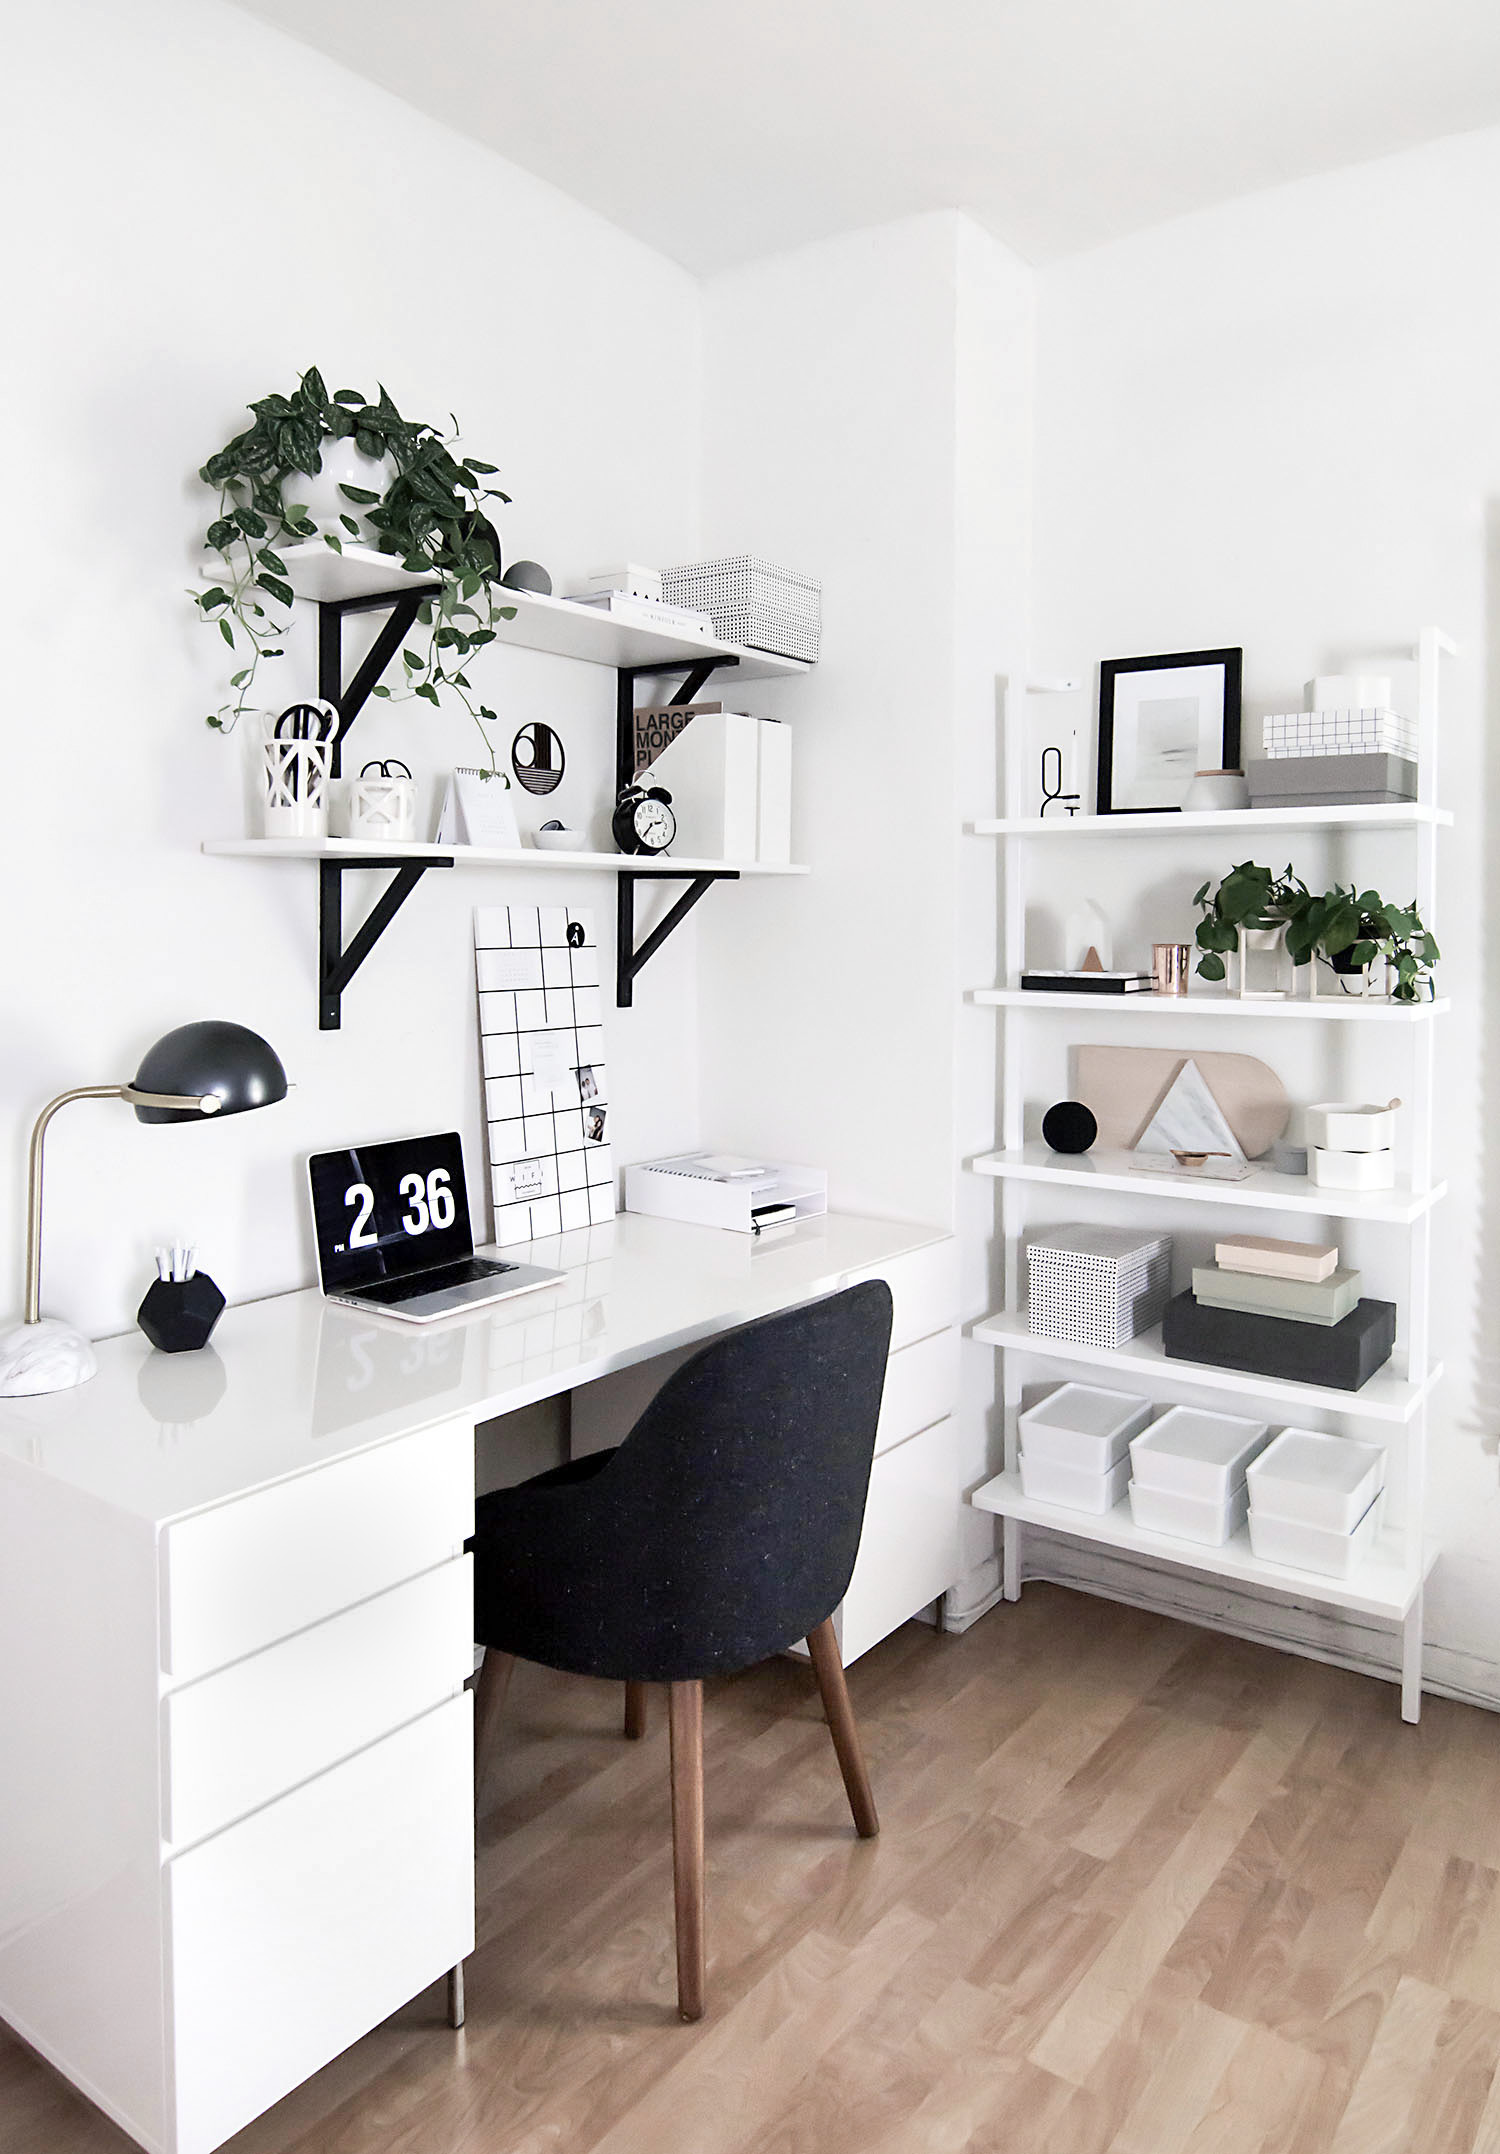 Shop my home homey oh my - Design home office space easily ...